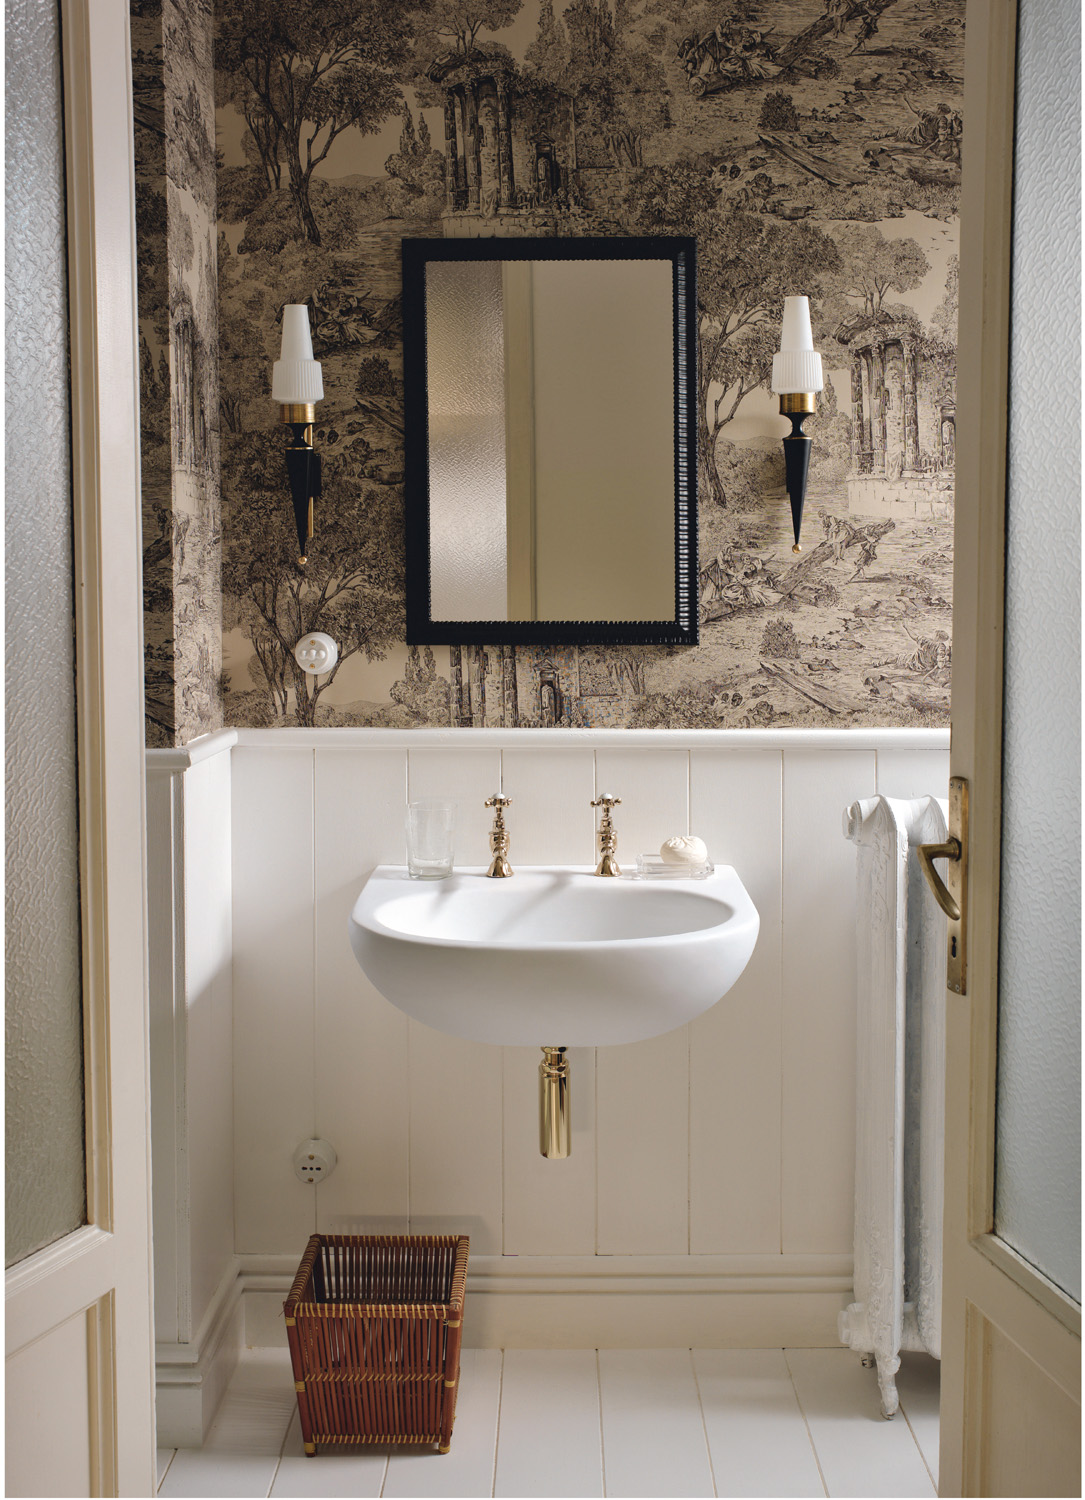 In an interior design that boasts a bold mix of vintage wallpaper, boiserie and off-white hardwood flooring, the Corian Calm washbasin in a sleek shell of Corian Glacier White harmonises perfectly with its surroundings.